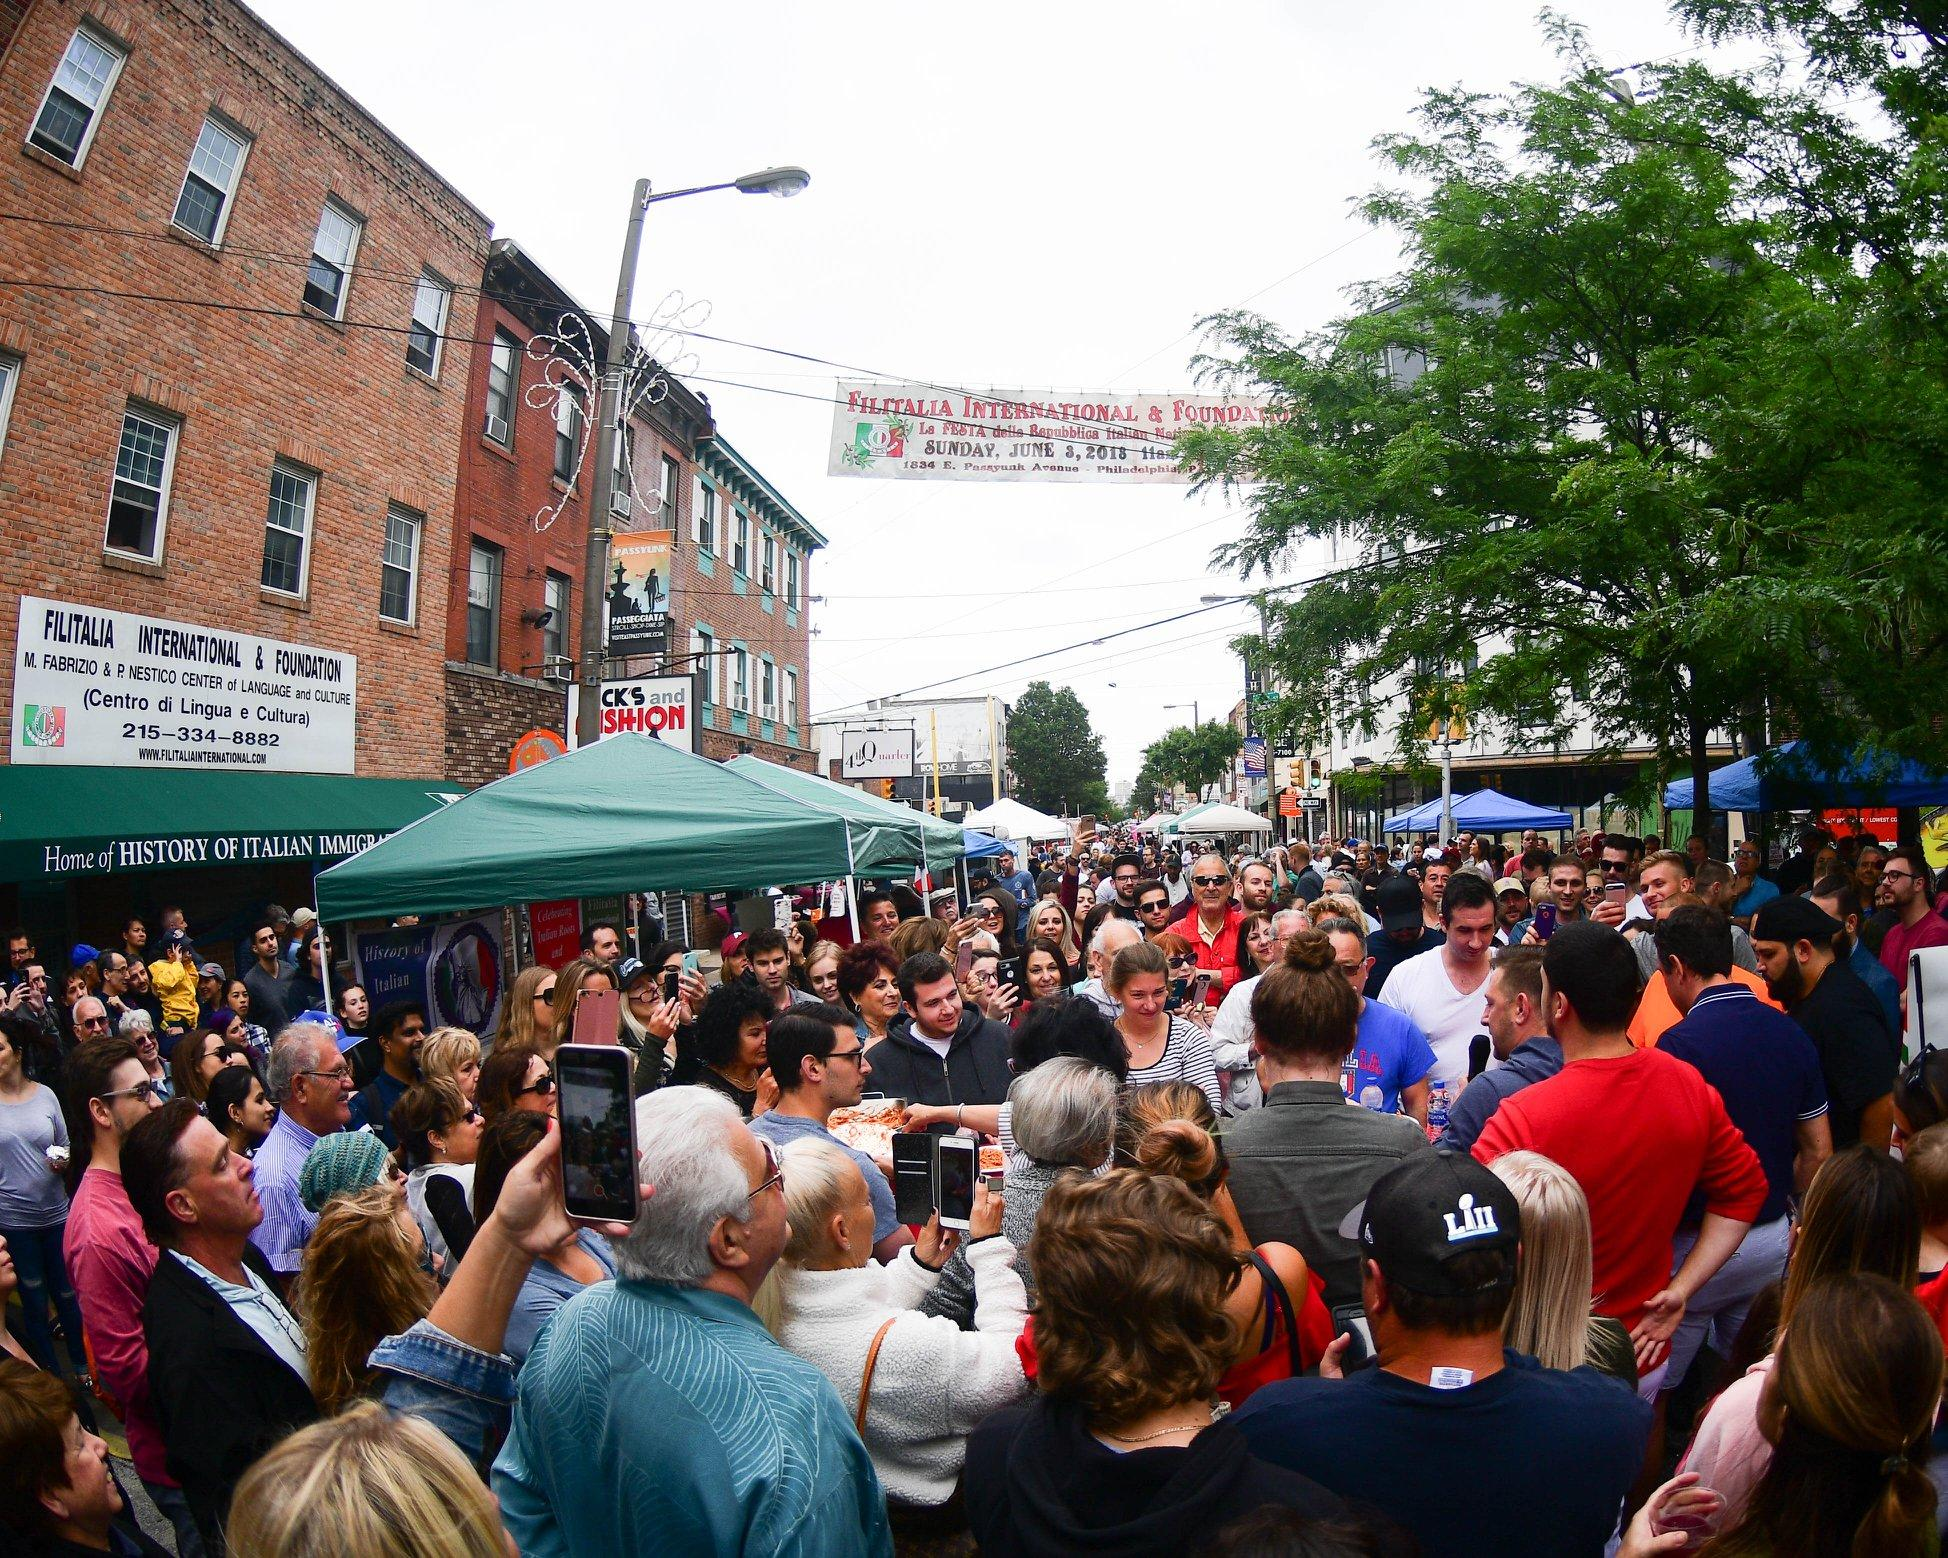 La Festa Street Festival - Committee Volunteers Needed